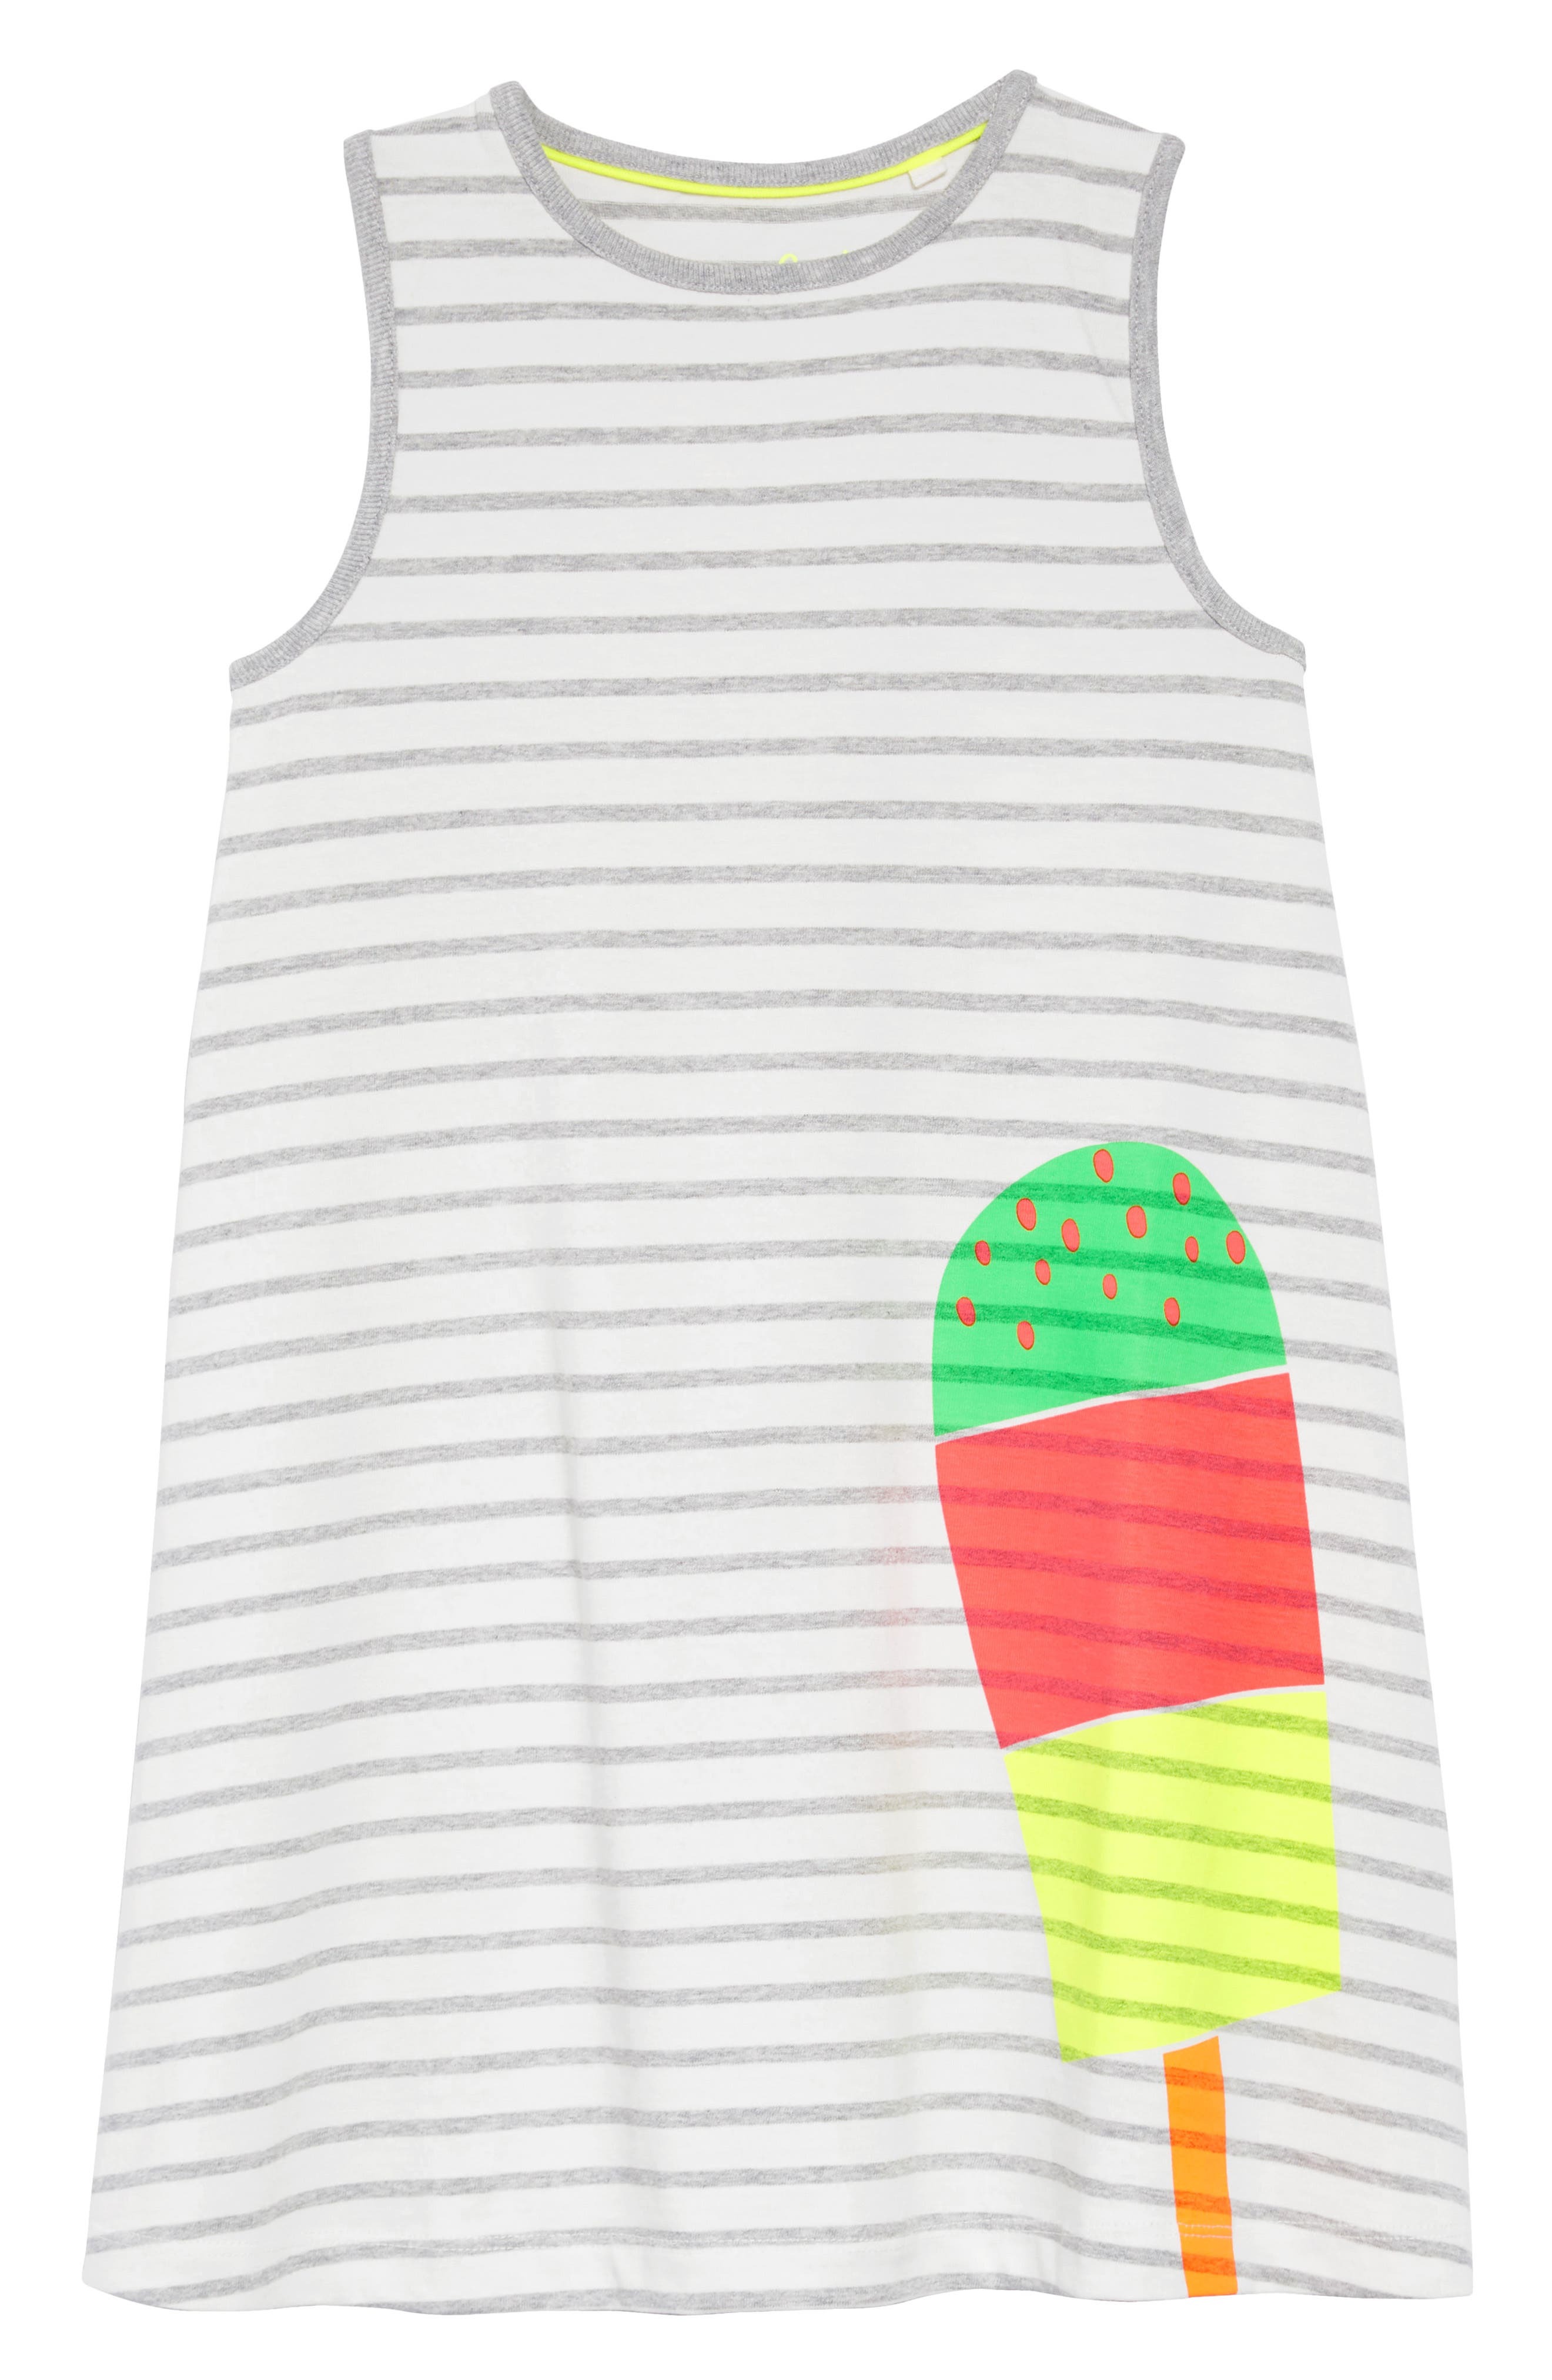 Vacation Appliqué Dress,                         Main,                         color, Ivory/ Grey Marl Stripe